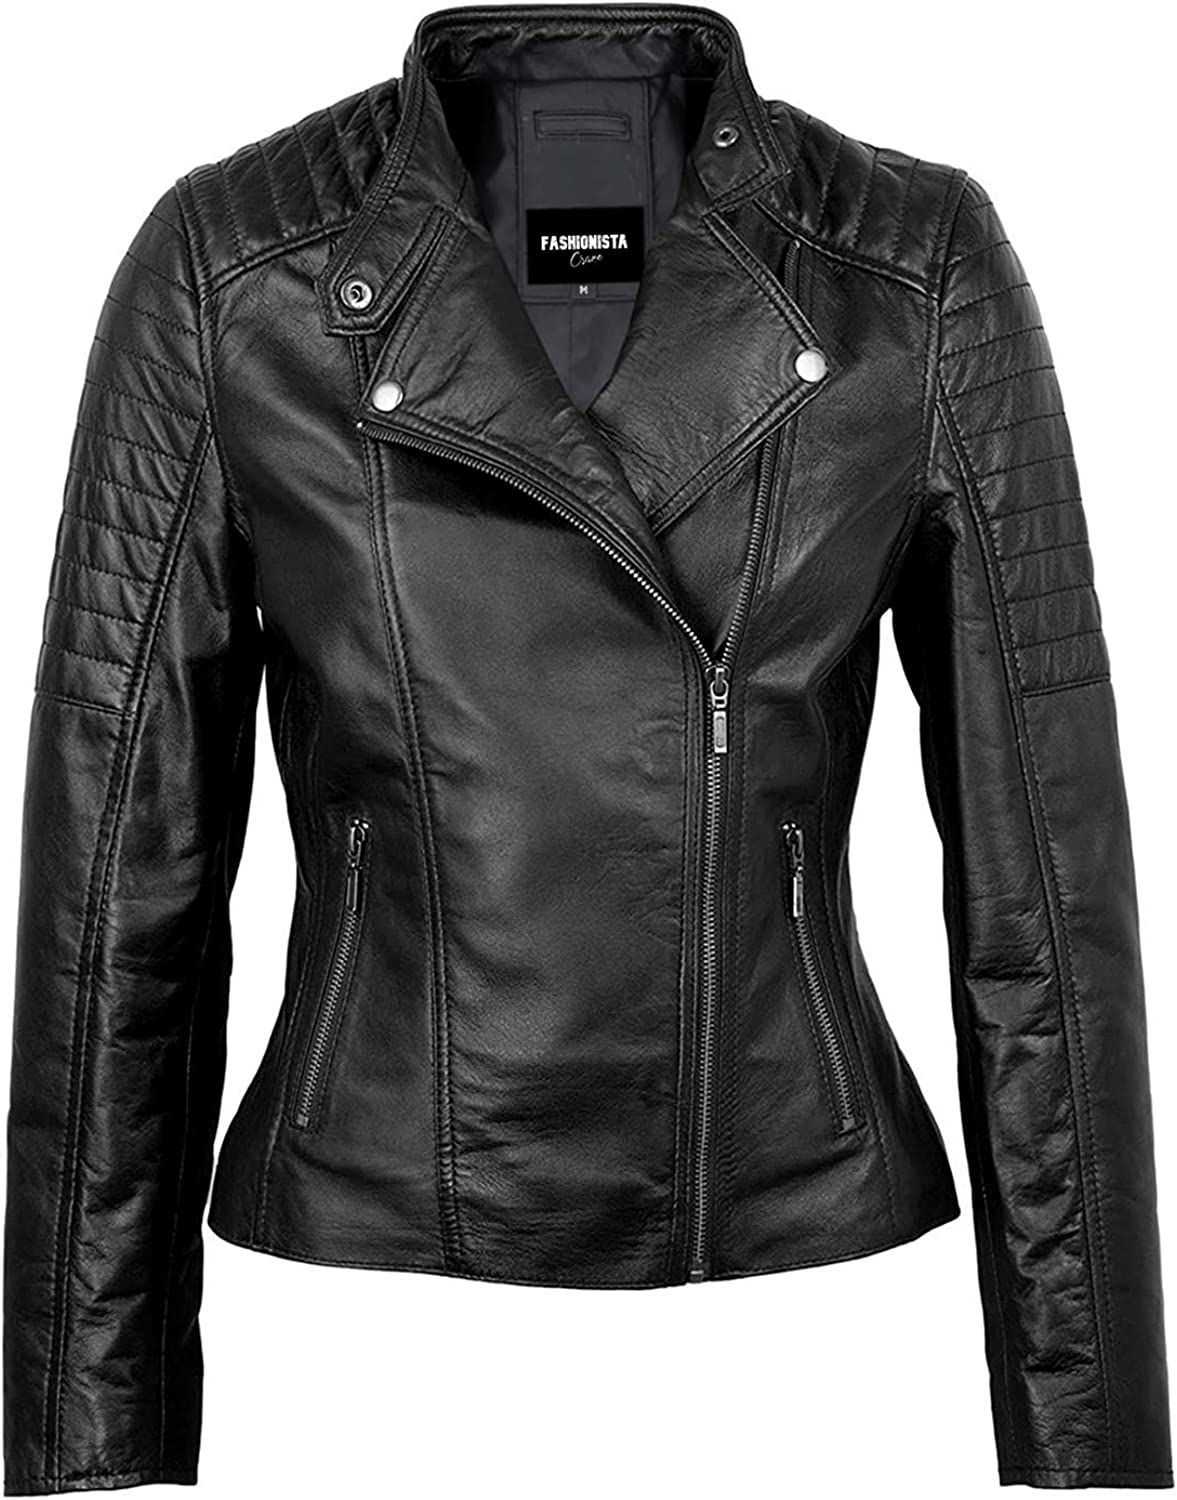 Fashionsta Craze Cora Black Quilted Real Leather Jacket Women